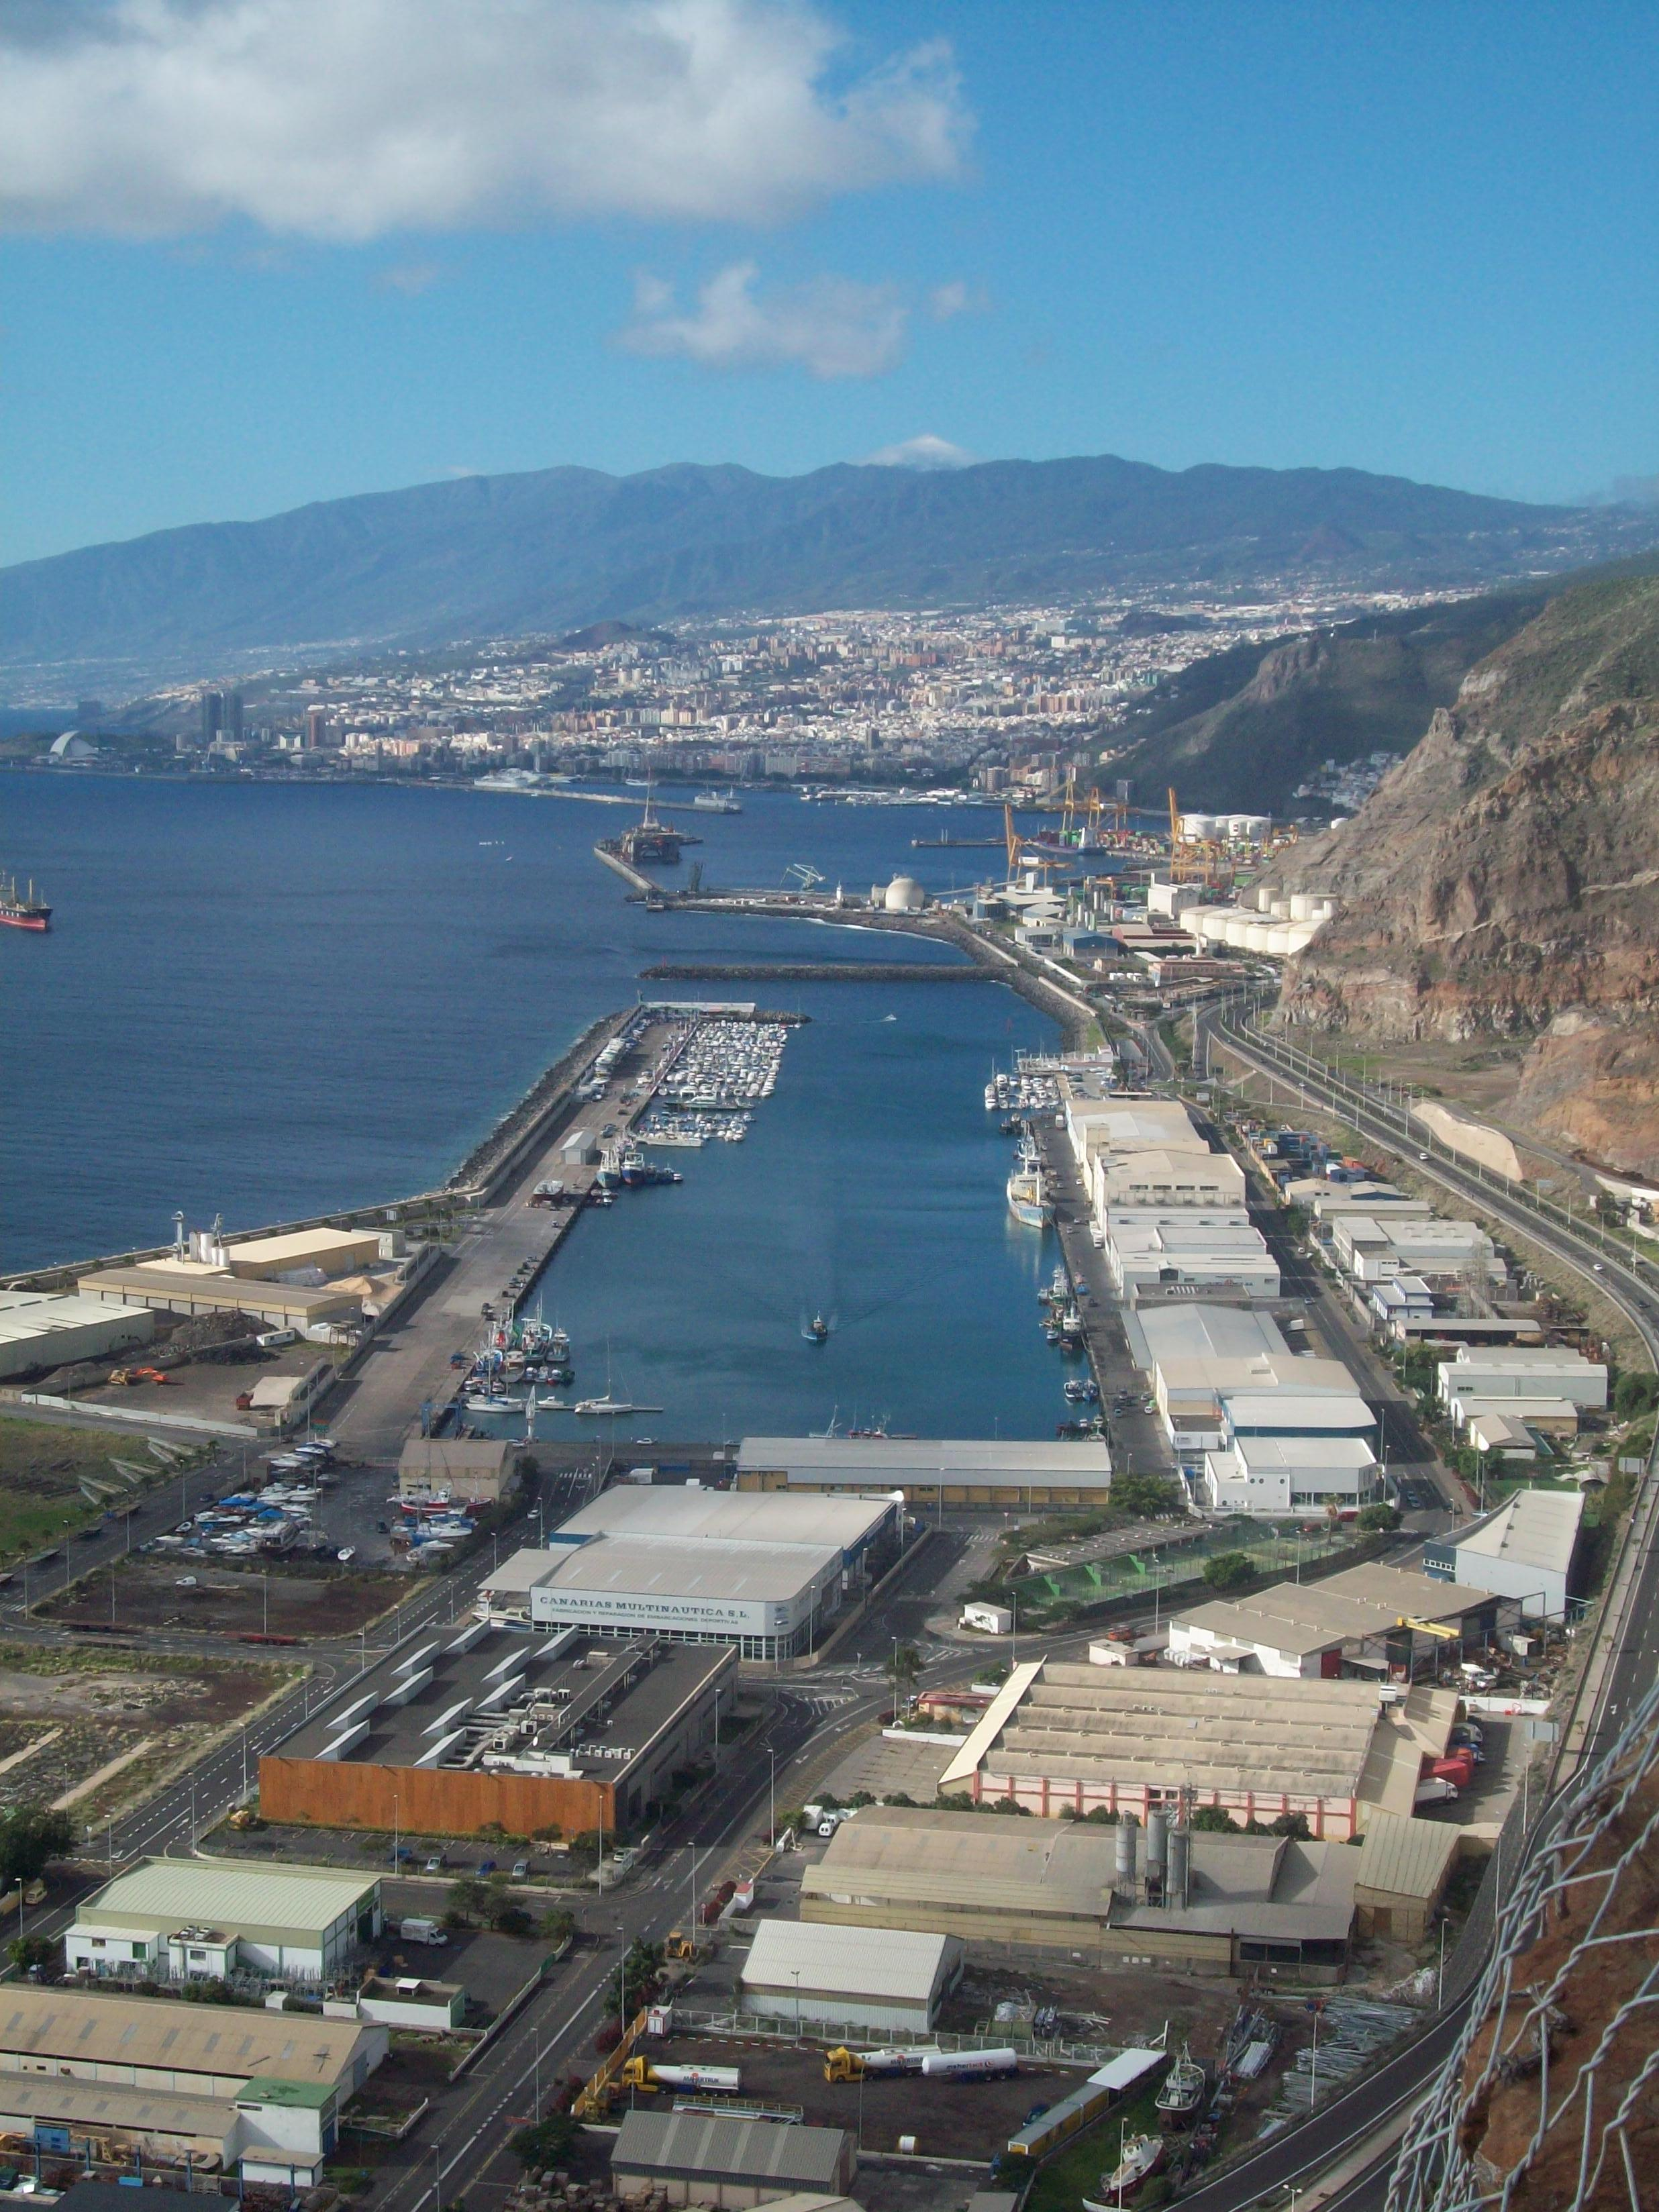 Image of the ferry terminal in Tenerife (Santa Cruz)